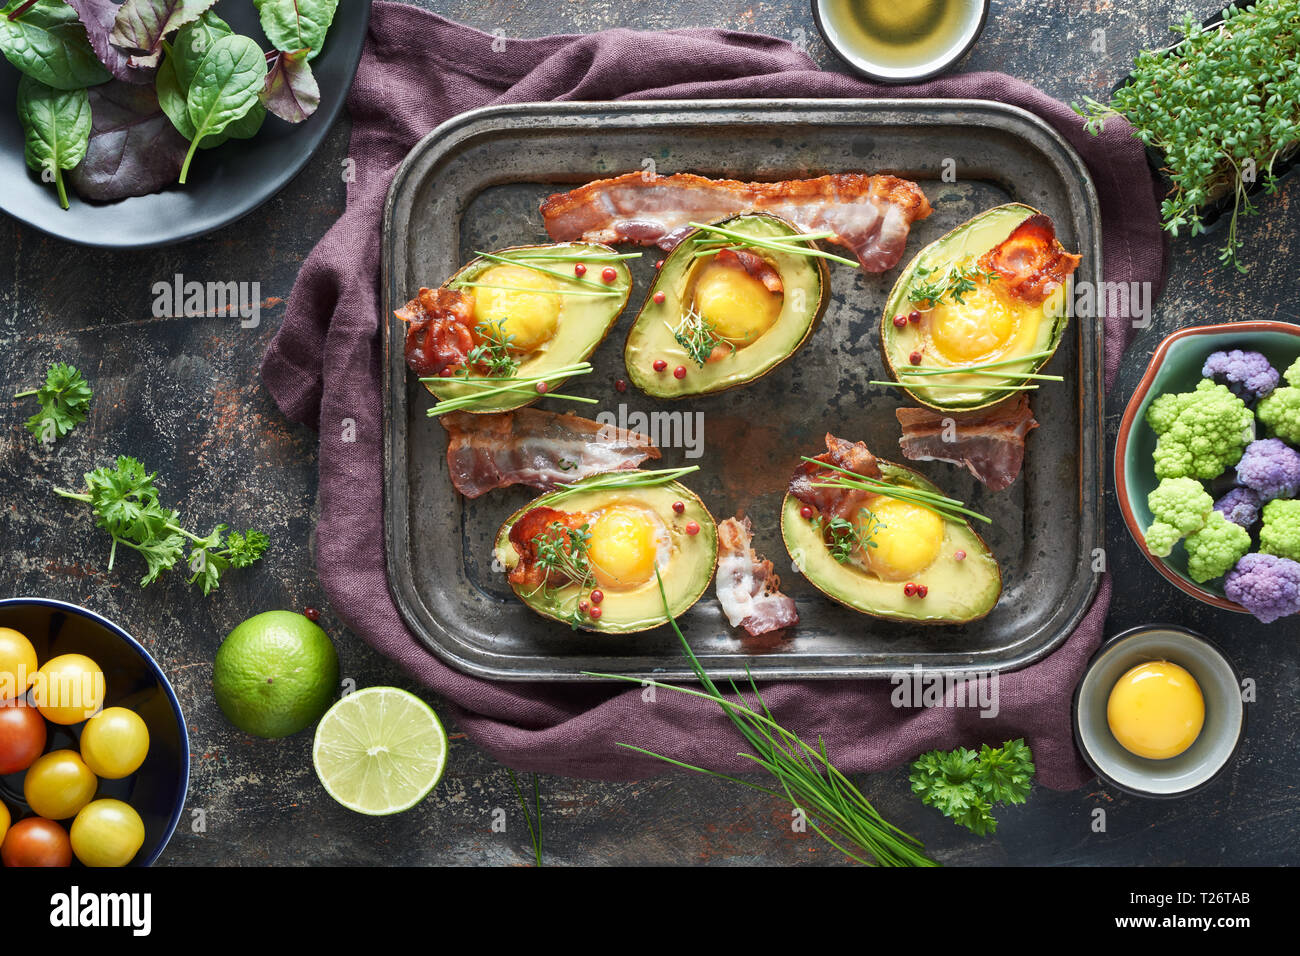 Baked avocado with egg and bacon on a metal baking tray, flat lay with ingredients and herbs on dark background Stock Photo